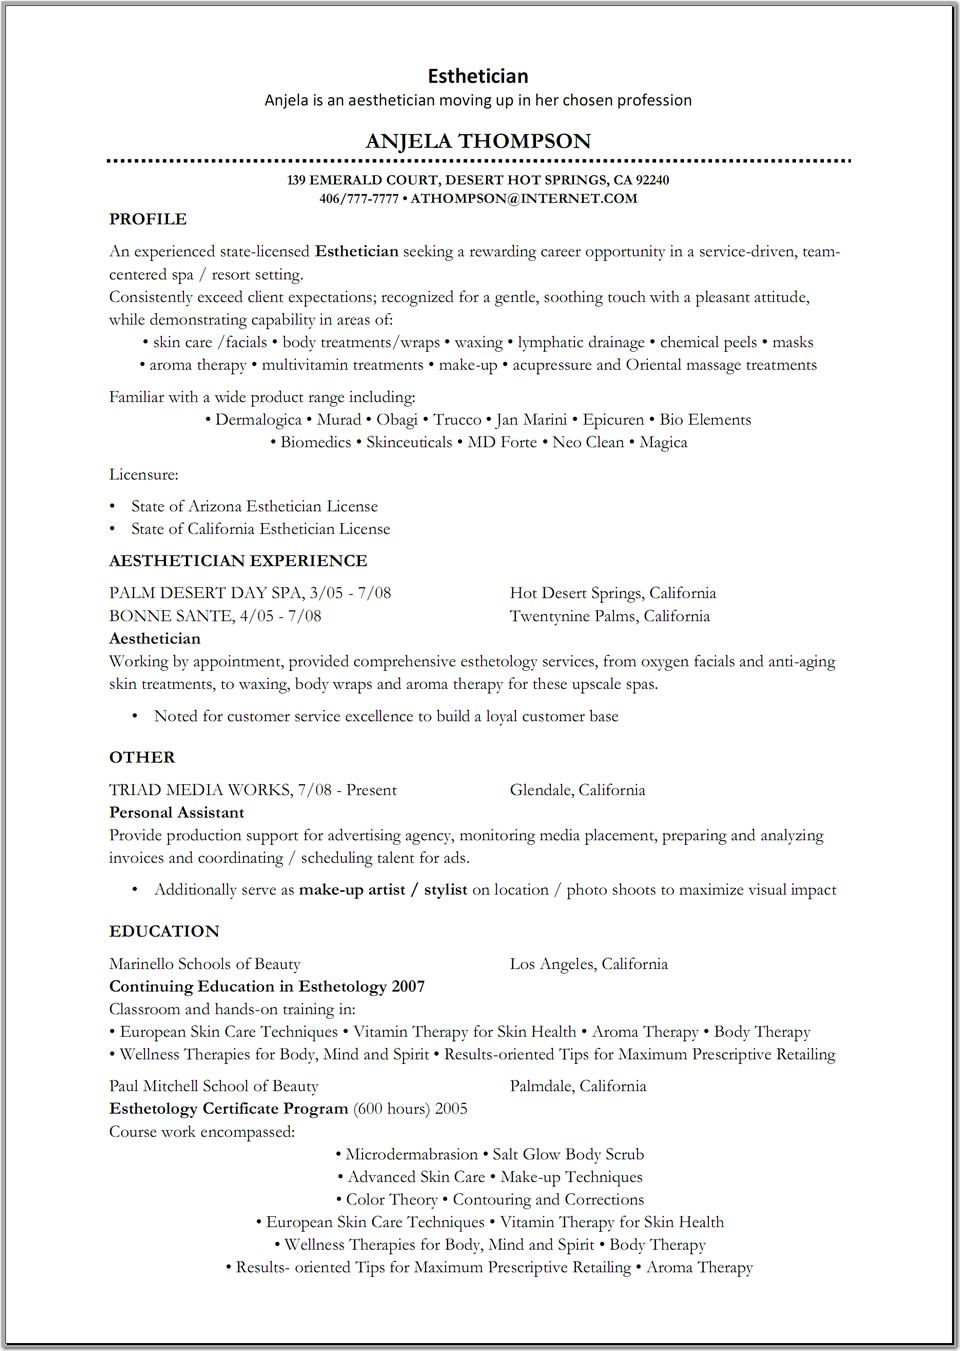 esthetician resume cover letter for medical pace university career services inspiration Resume Medical Esthetician Resume